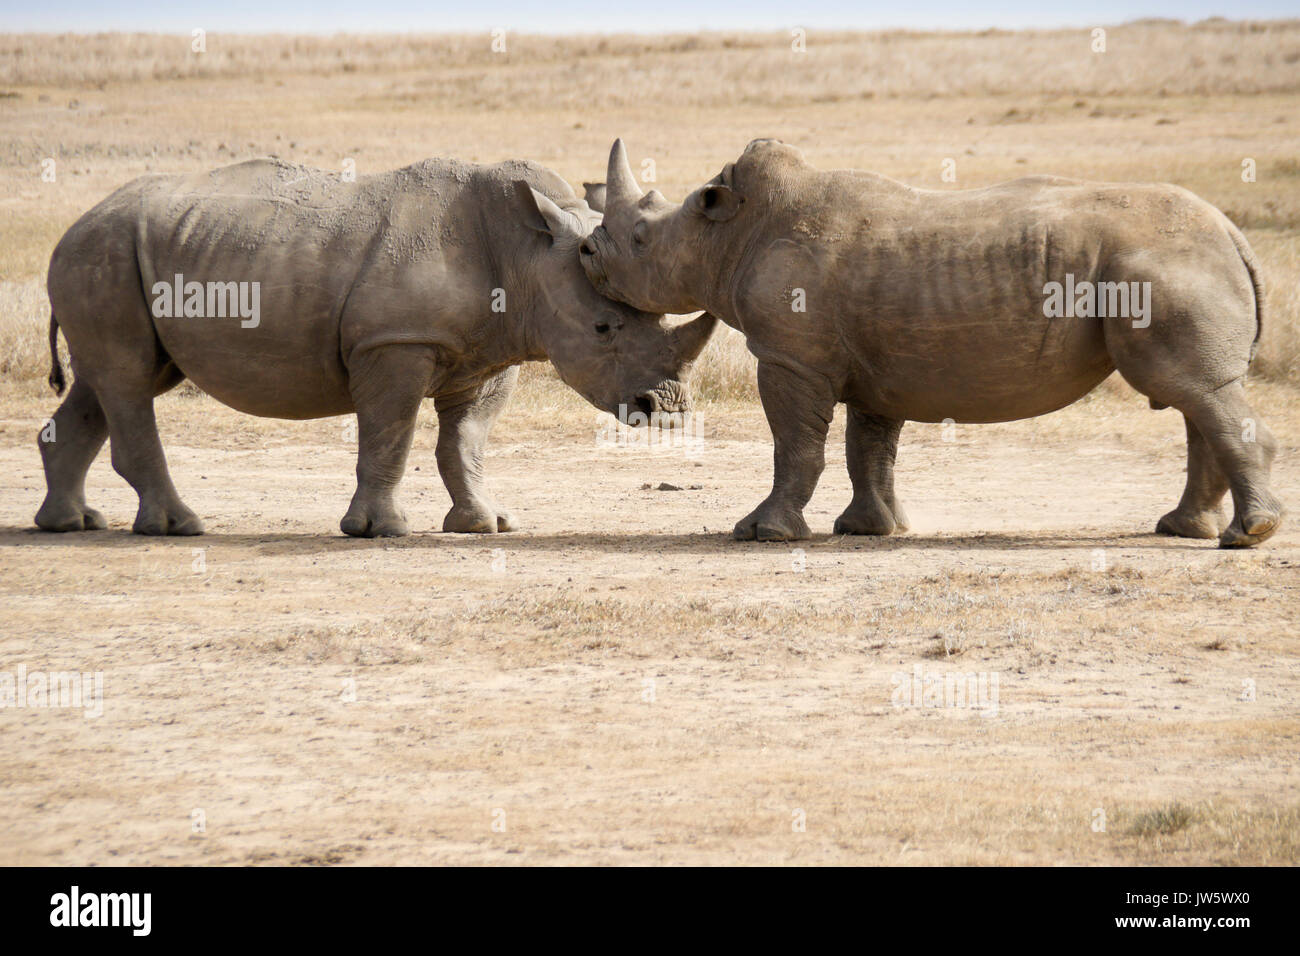 Male white rhinos mock fighting for dominance, Ol Pejeta Conservancy, Kenya - Stock Image